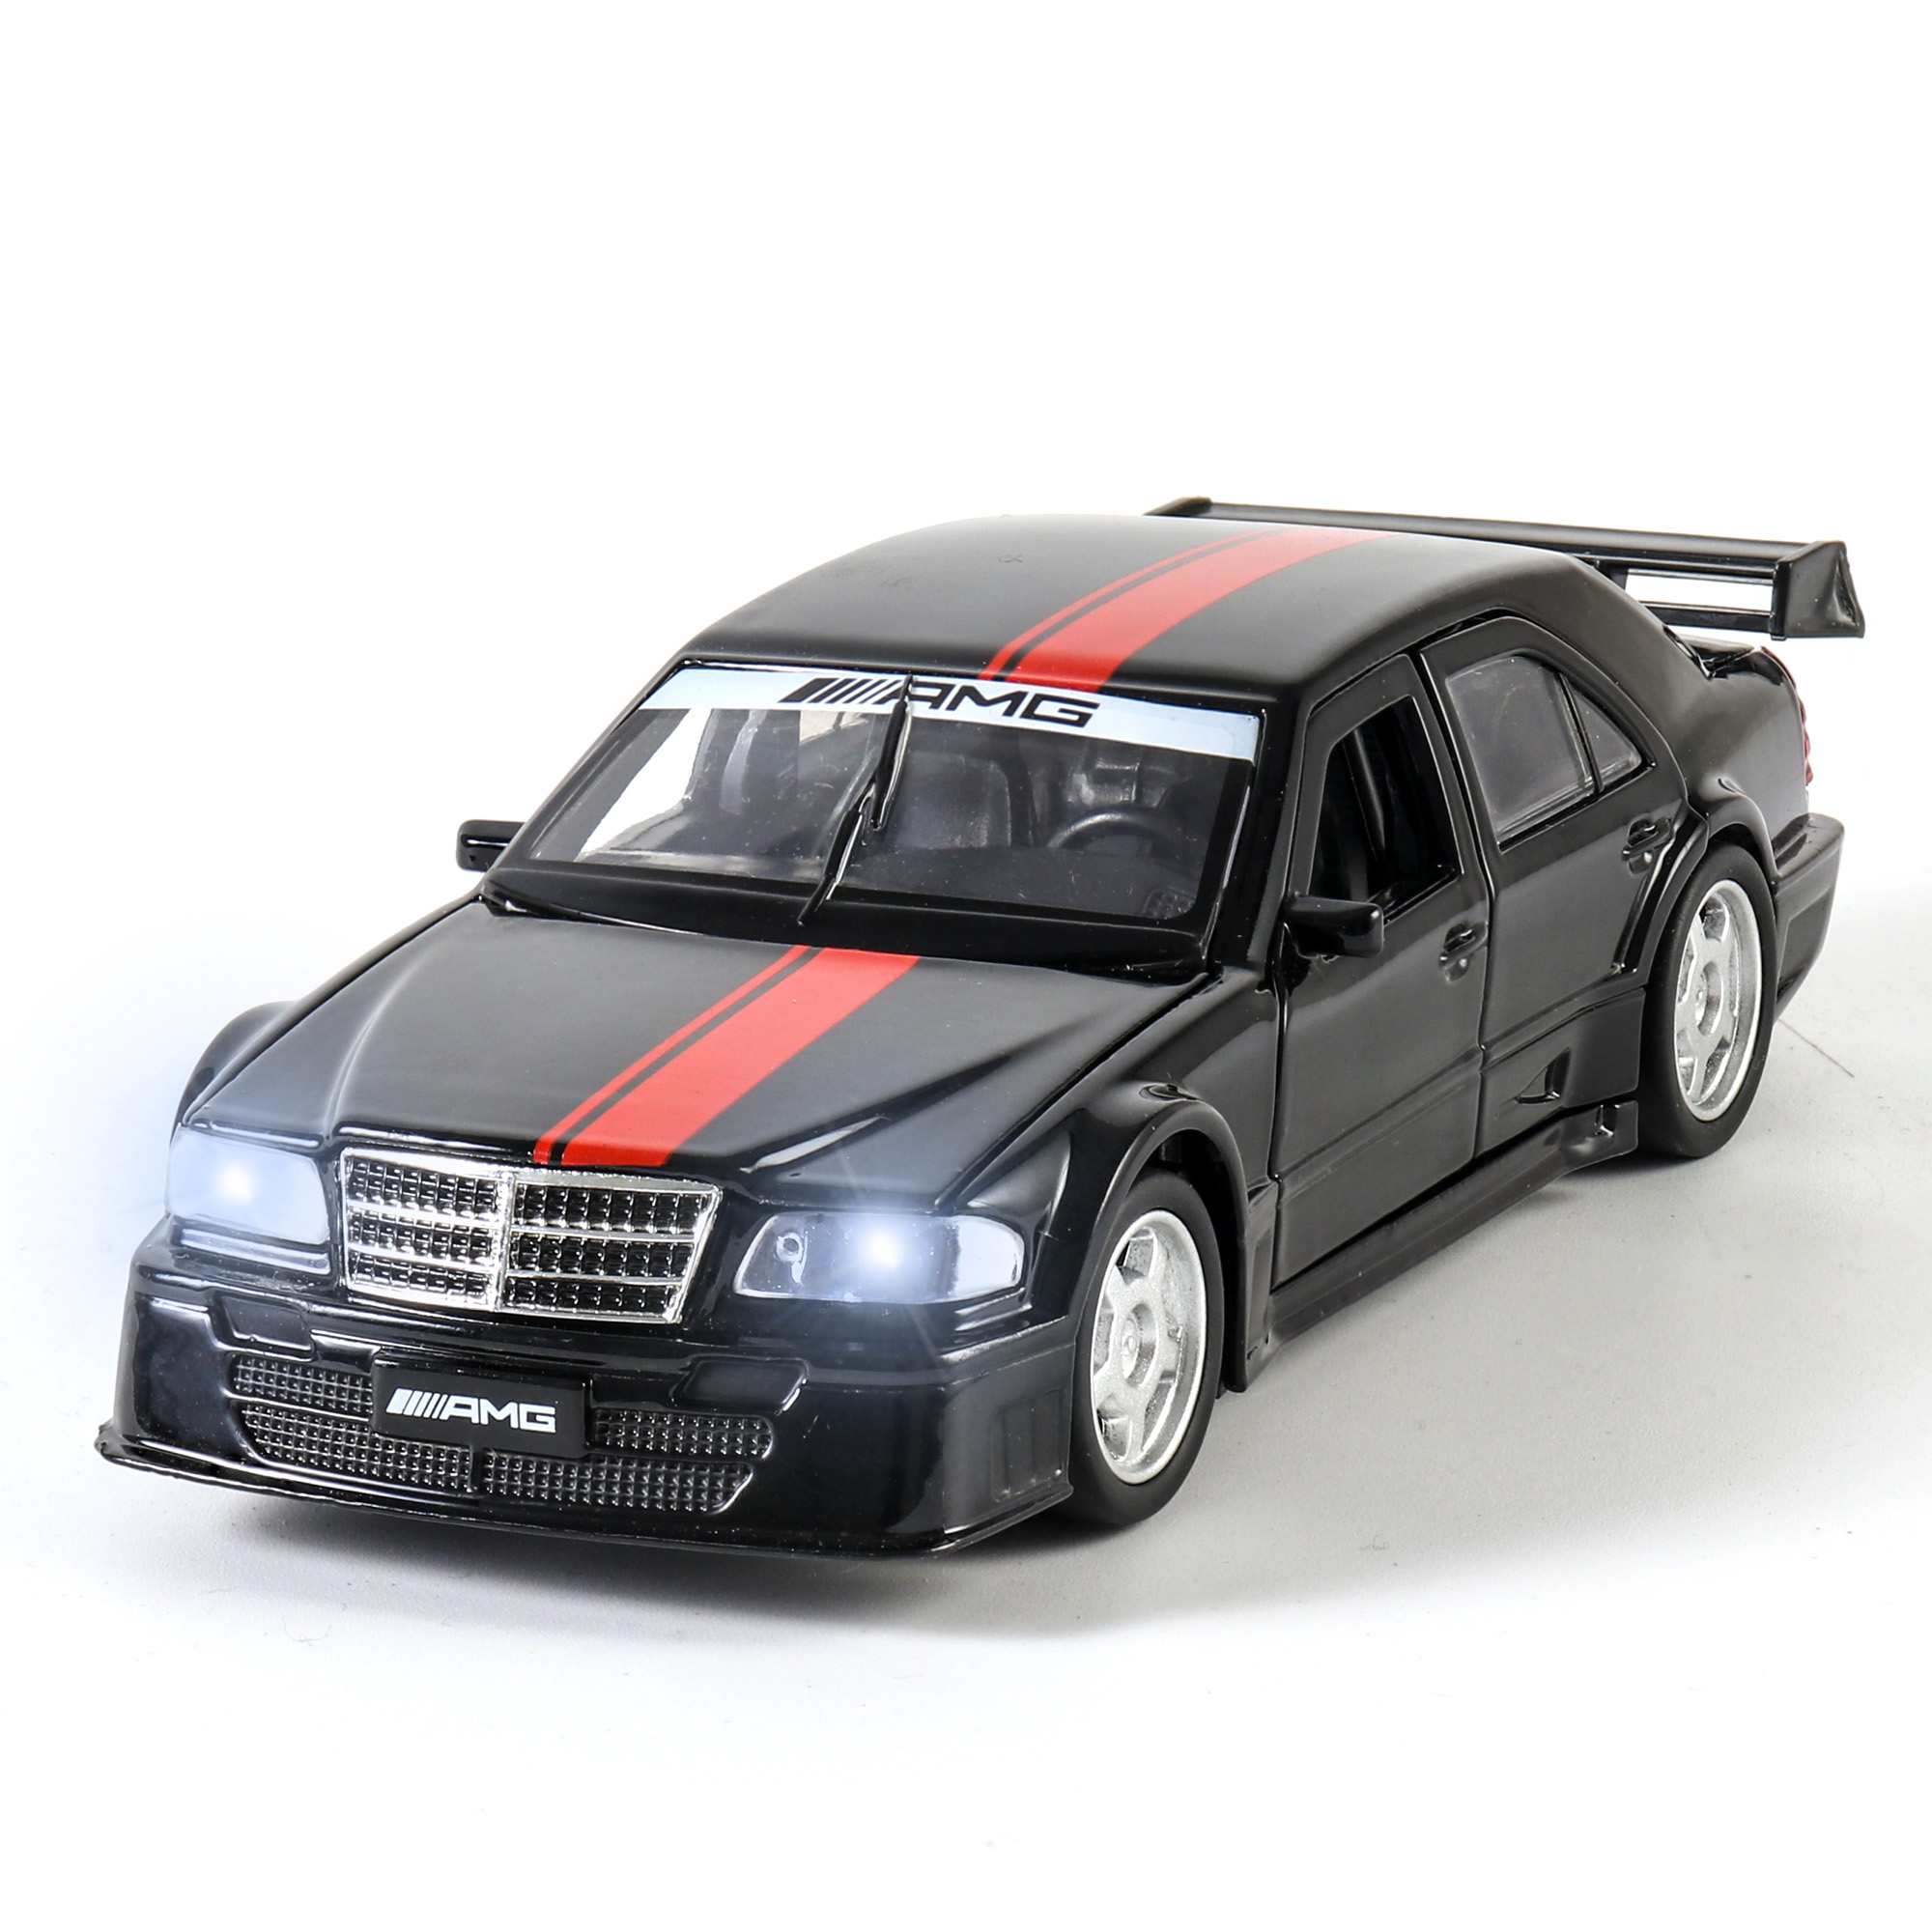 1:32 Mercedes C-CLASS AMG DT Diecast Toy Vehicle Sound And Light Alloy Toy Car Model Toys For Children Gifts Car Genuine License